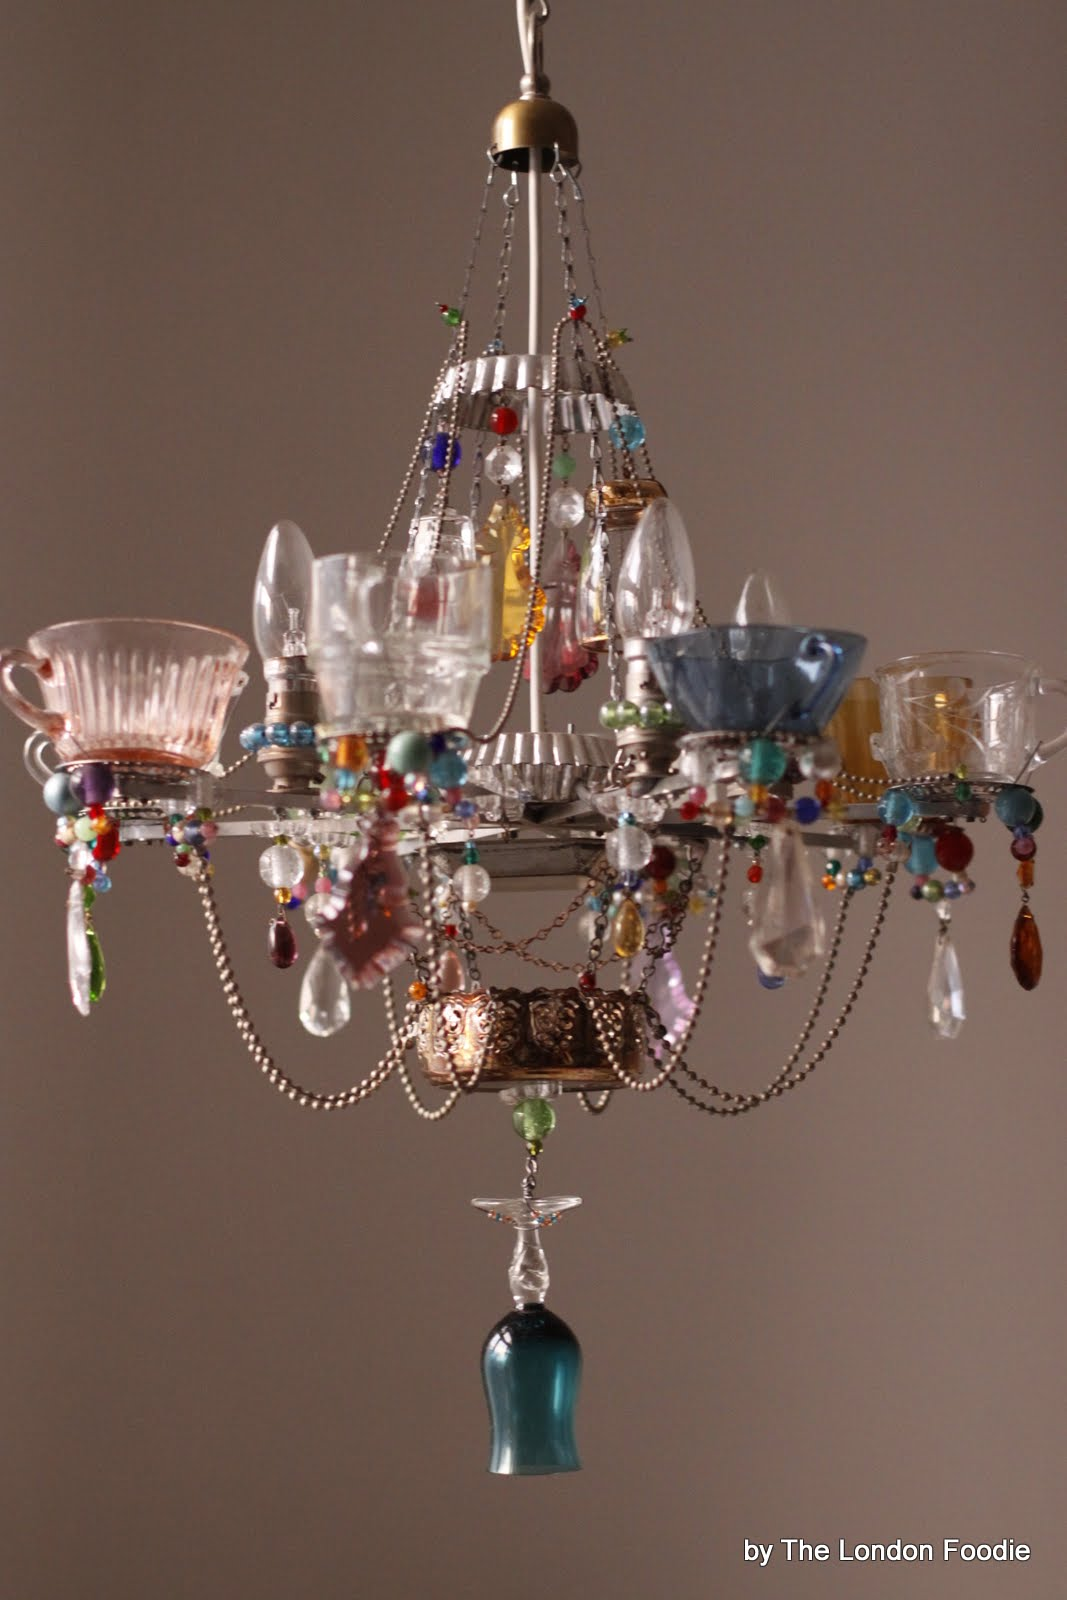 chandeliers images on beast best kysamm chandelier beauty teacup pinterest crafts the and